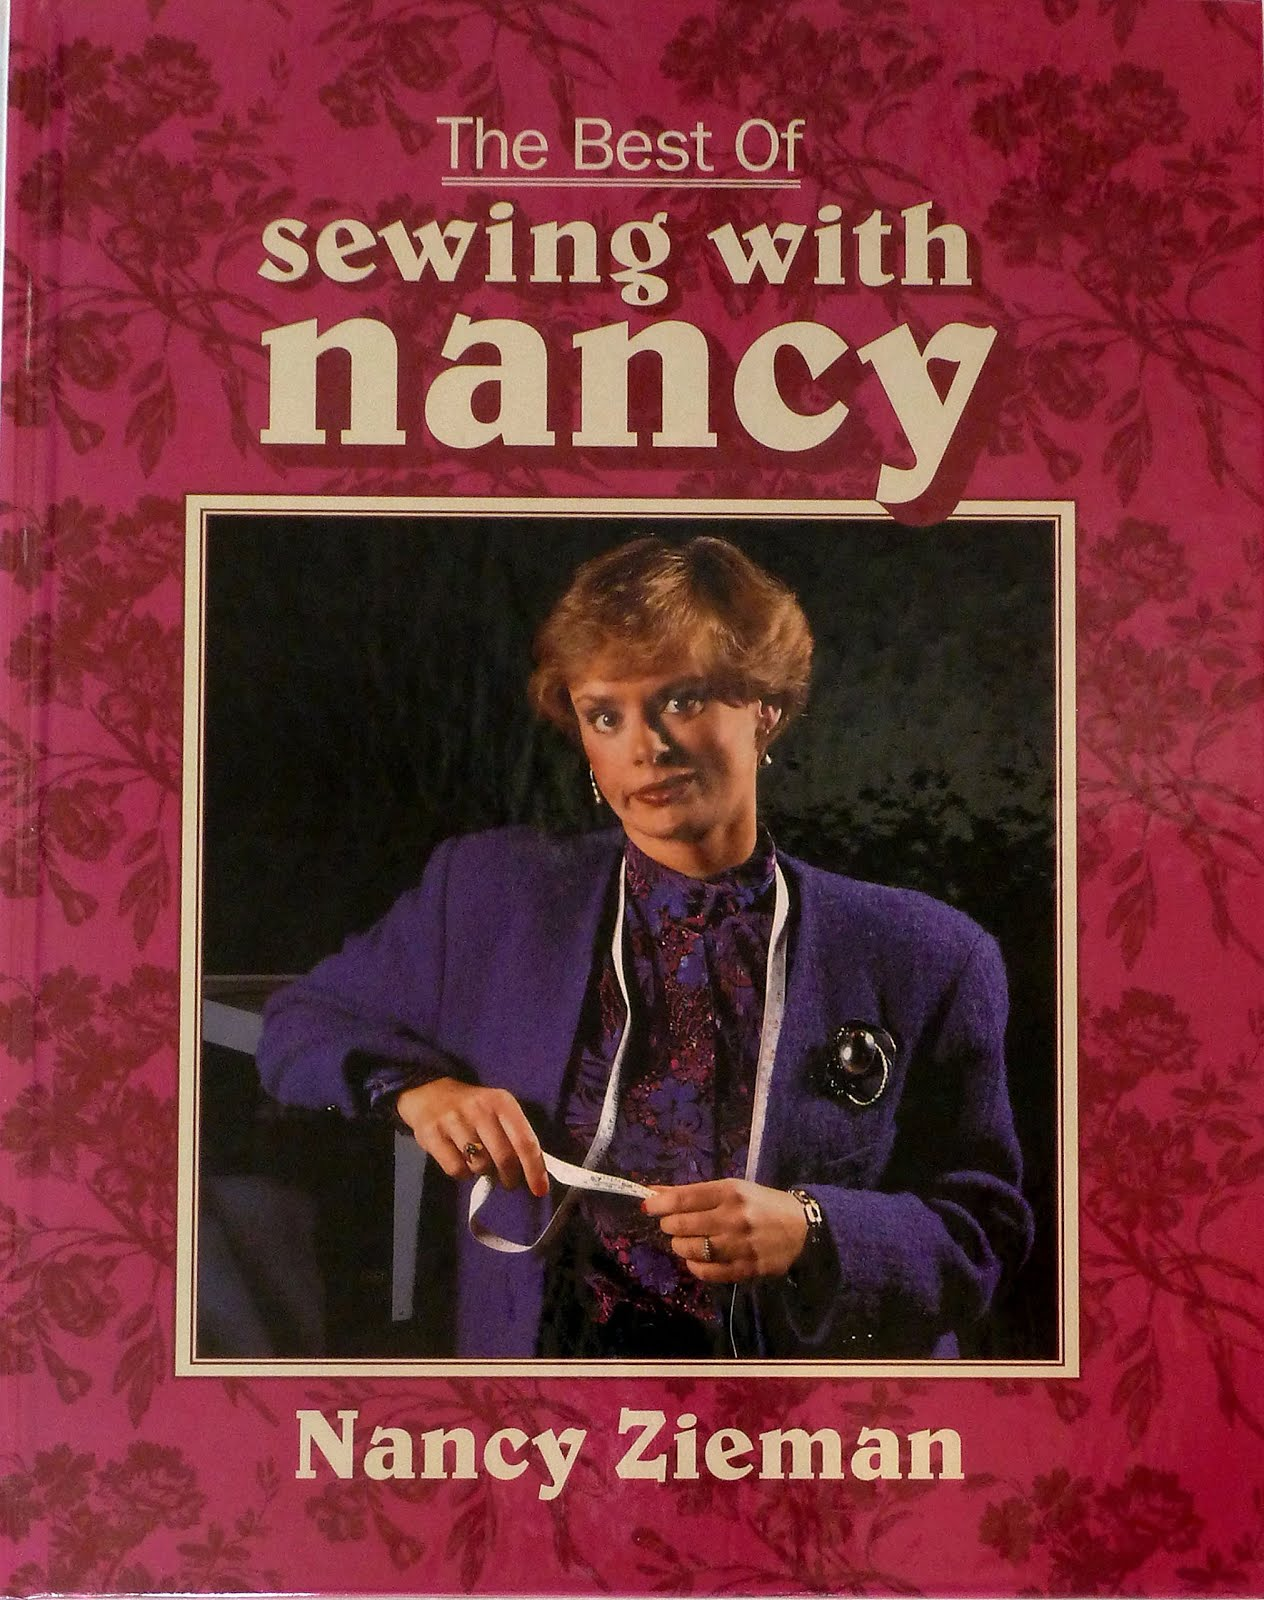 Only $3.29 at our eBay store... the best of Sewing with Nancy